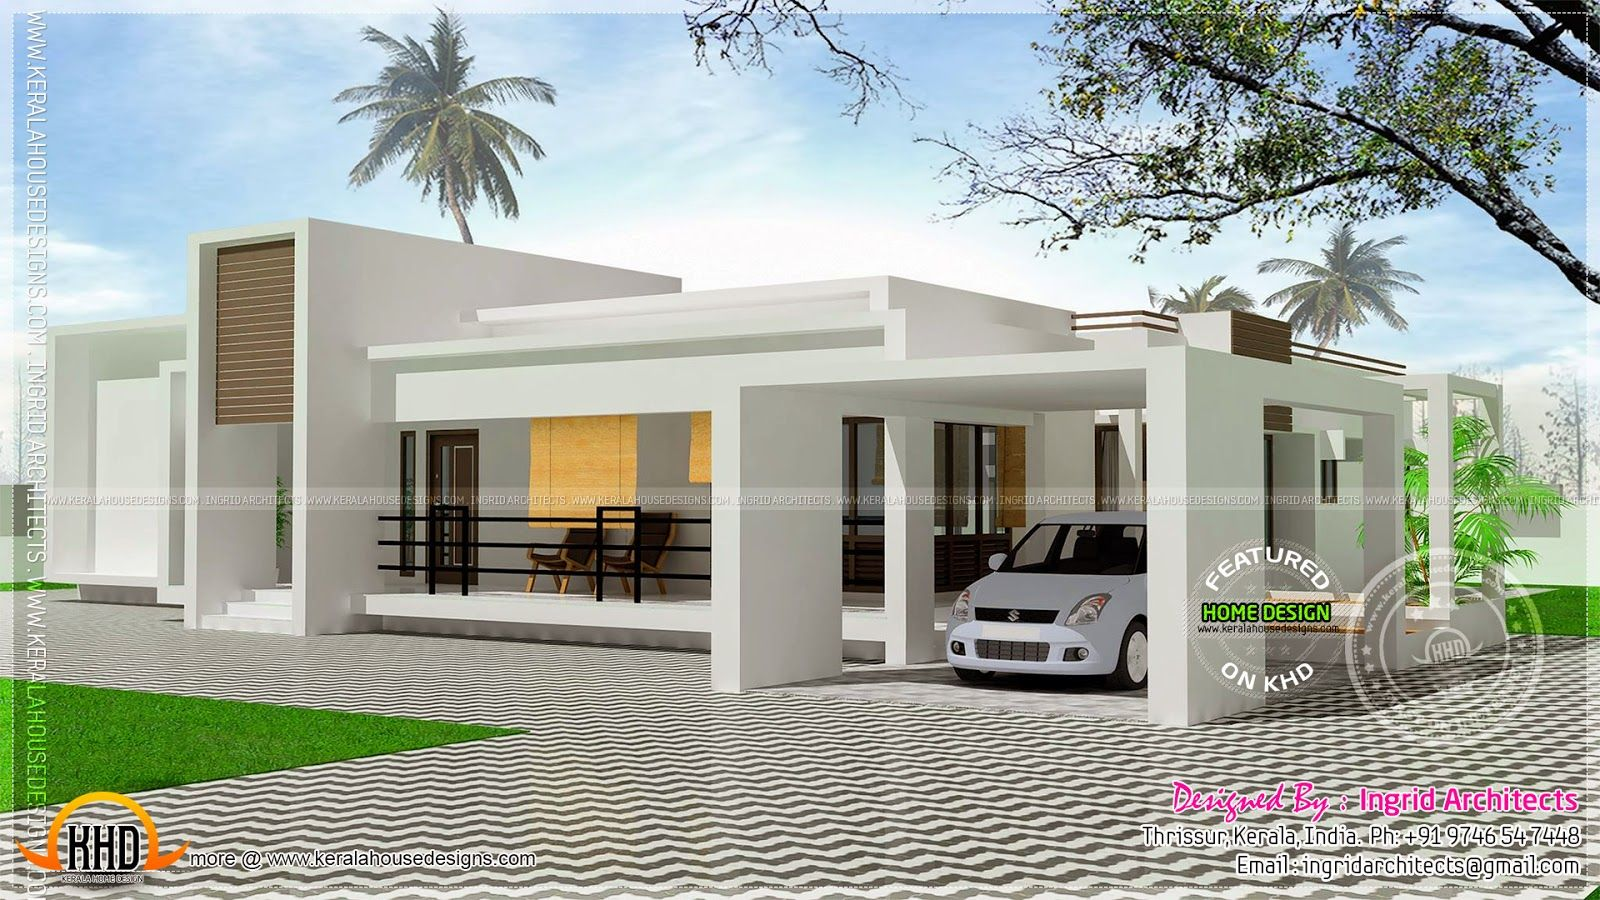 Elevations of single storey residential buildings google for Best single floor house plans